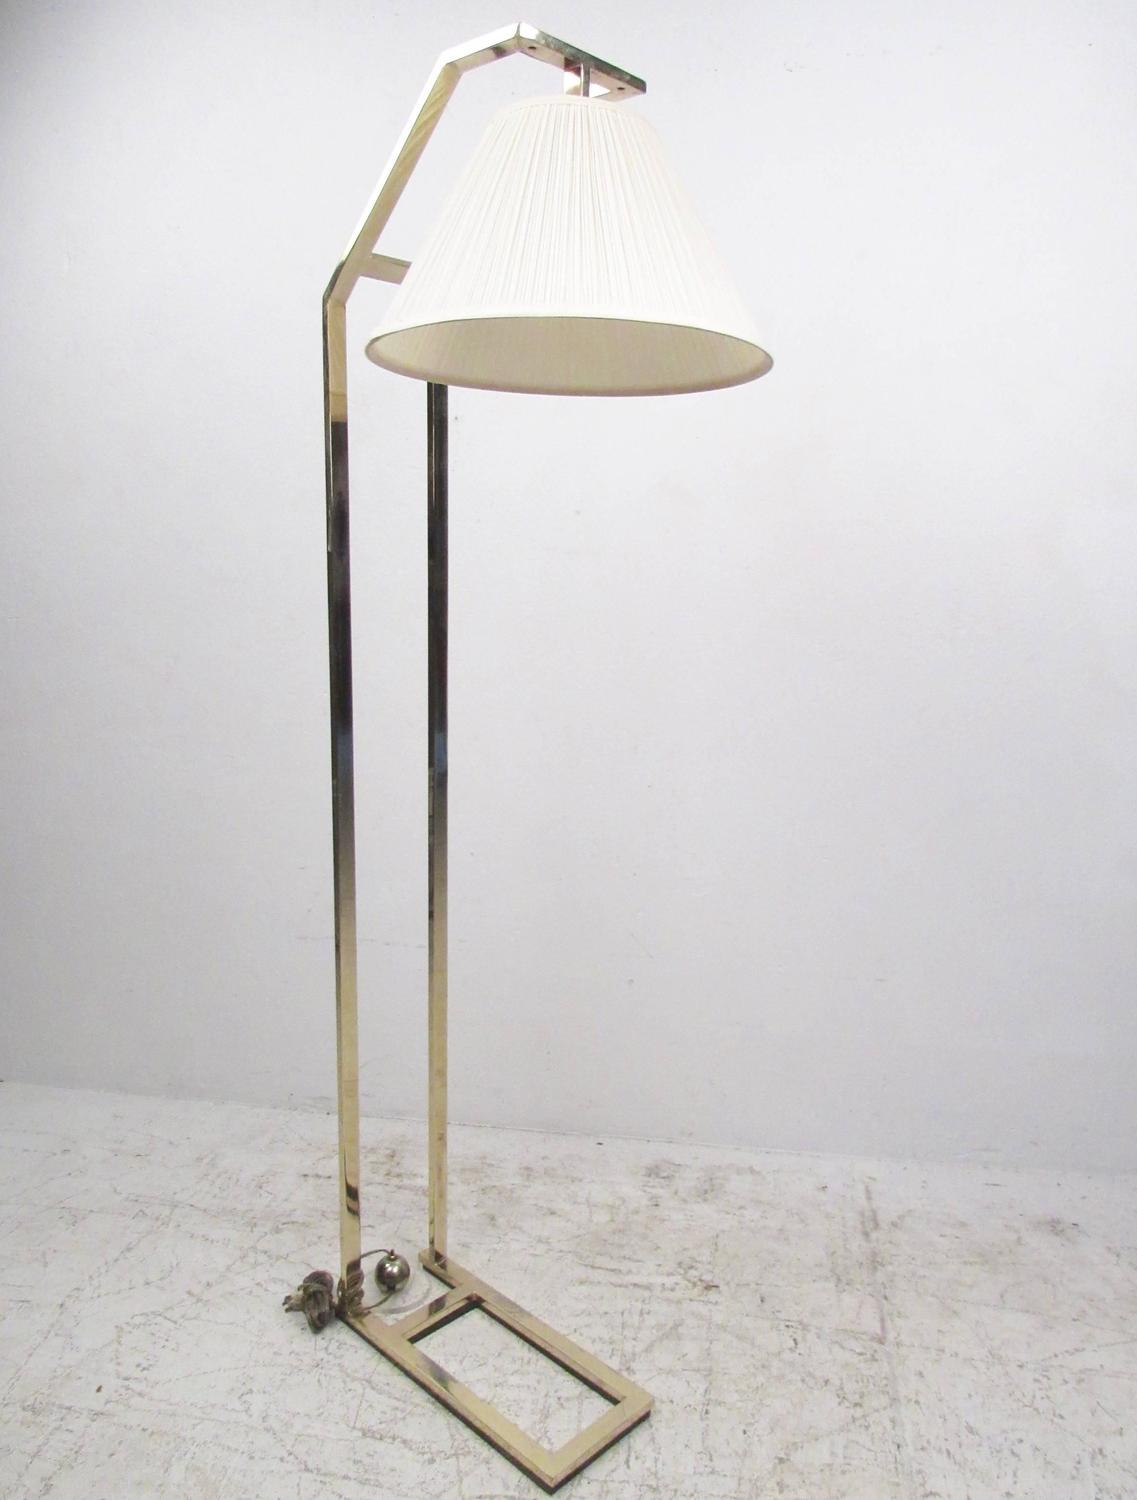 Elegant contemporary modern brass cantilever floor lamp for sale at 1stdibs - Artistic d lamp shade designed with modern and elegant shape style ...